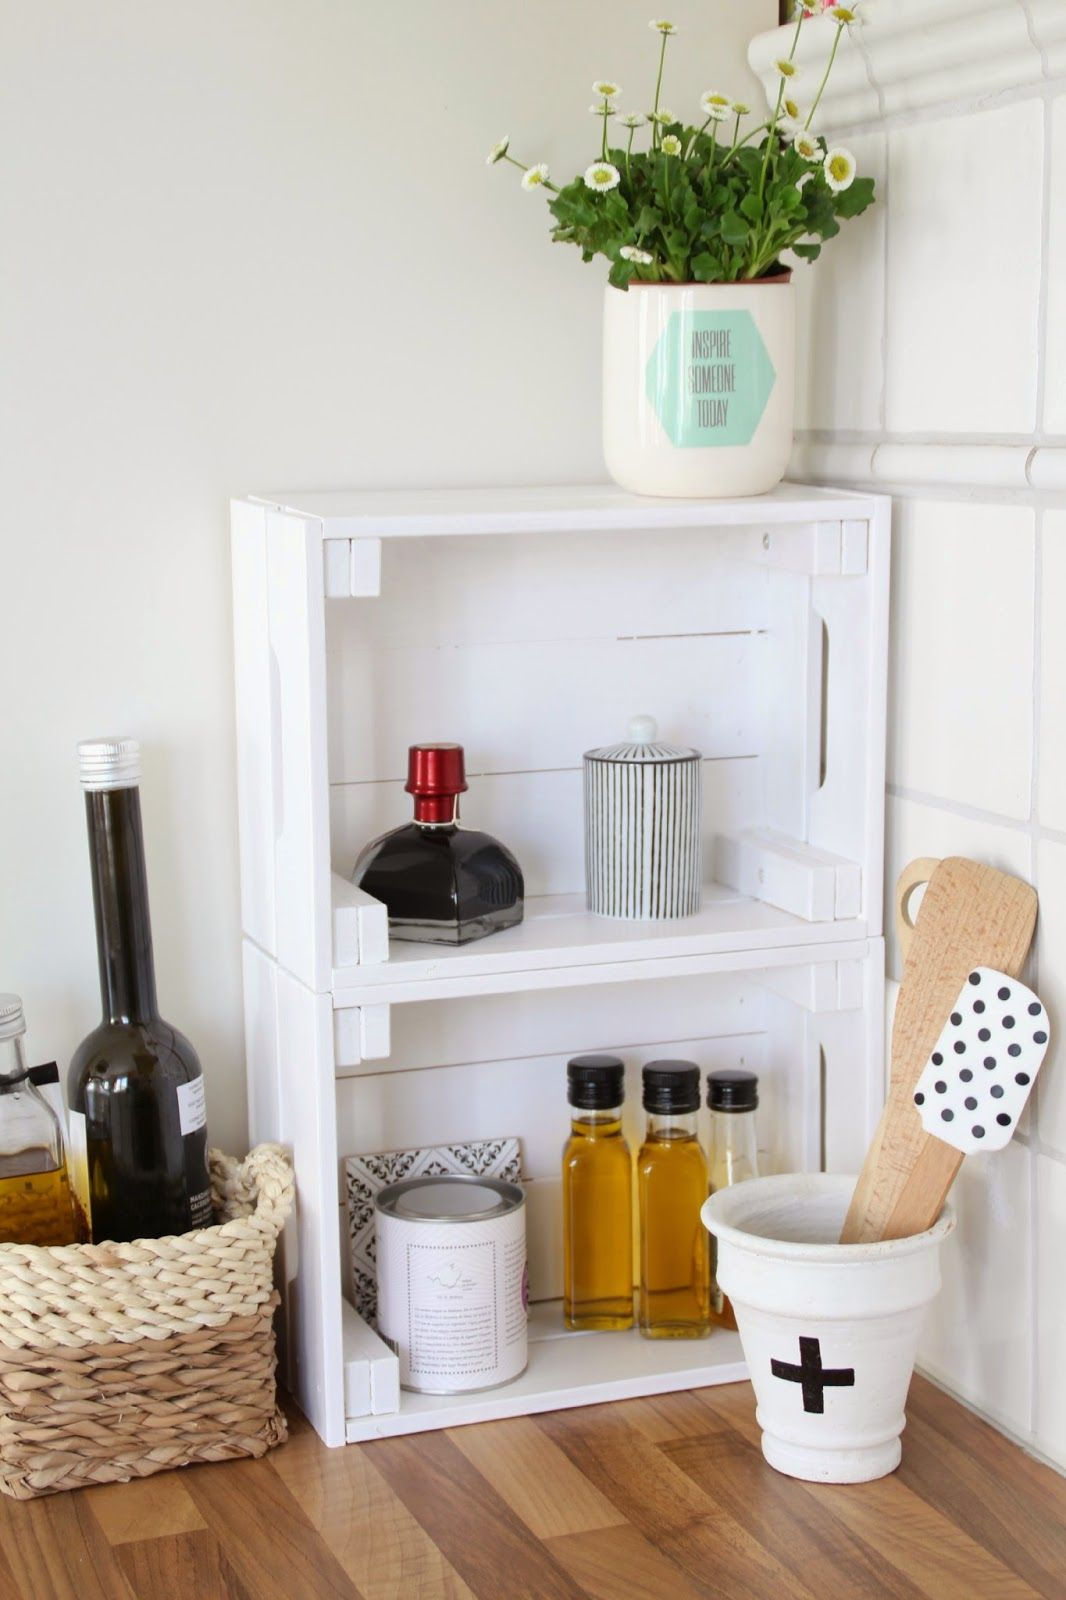 Holzkisten Als Regal Knagglig Als Regal Home Organization In 2019 Ikea Hack Diy